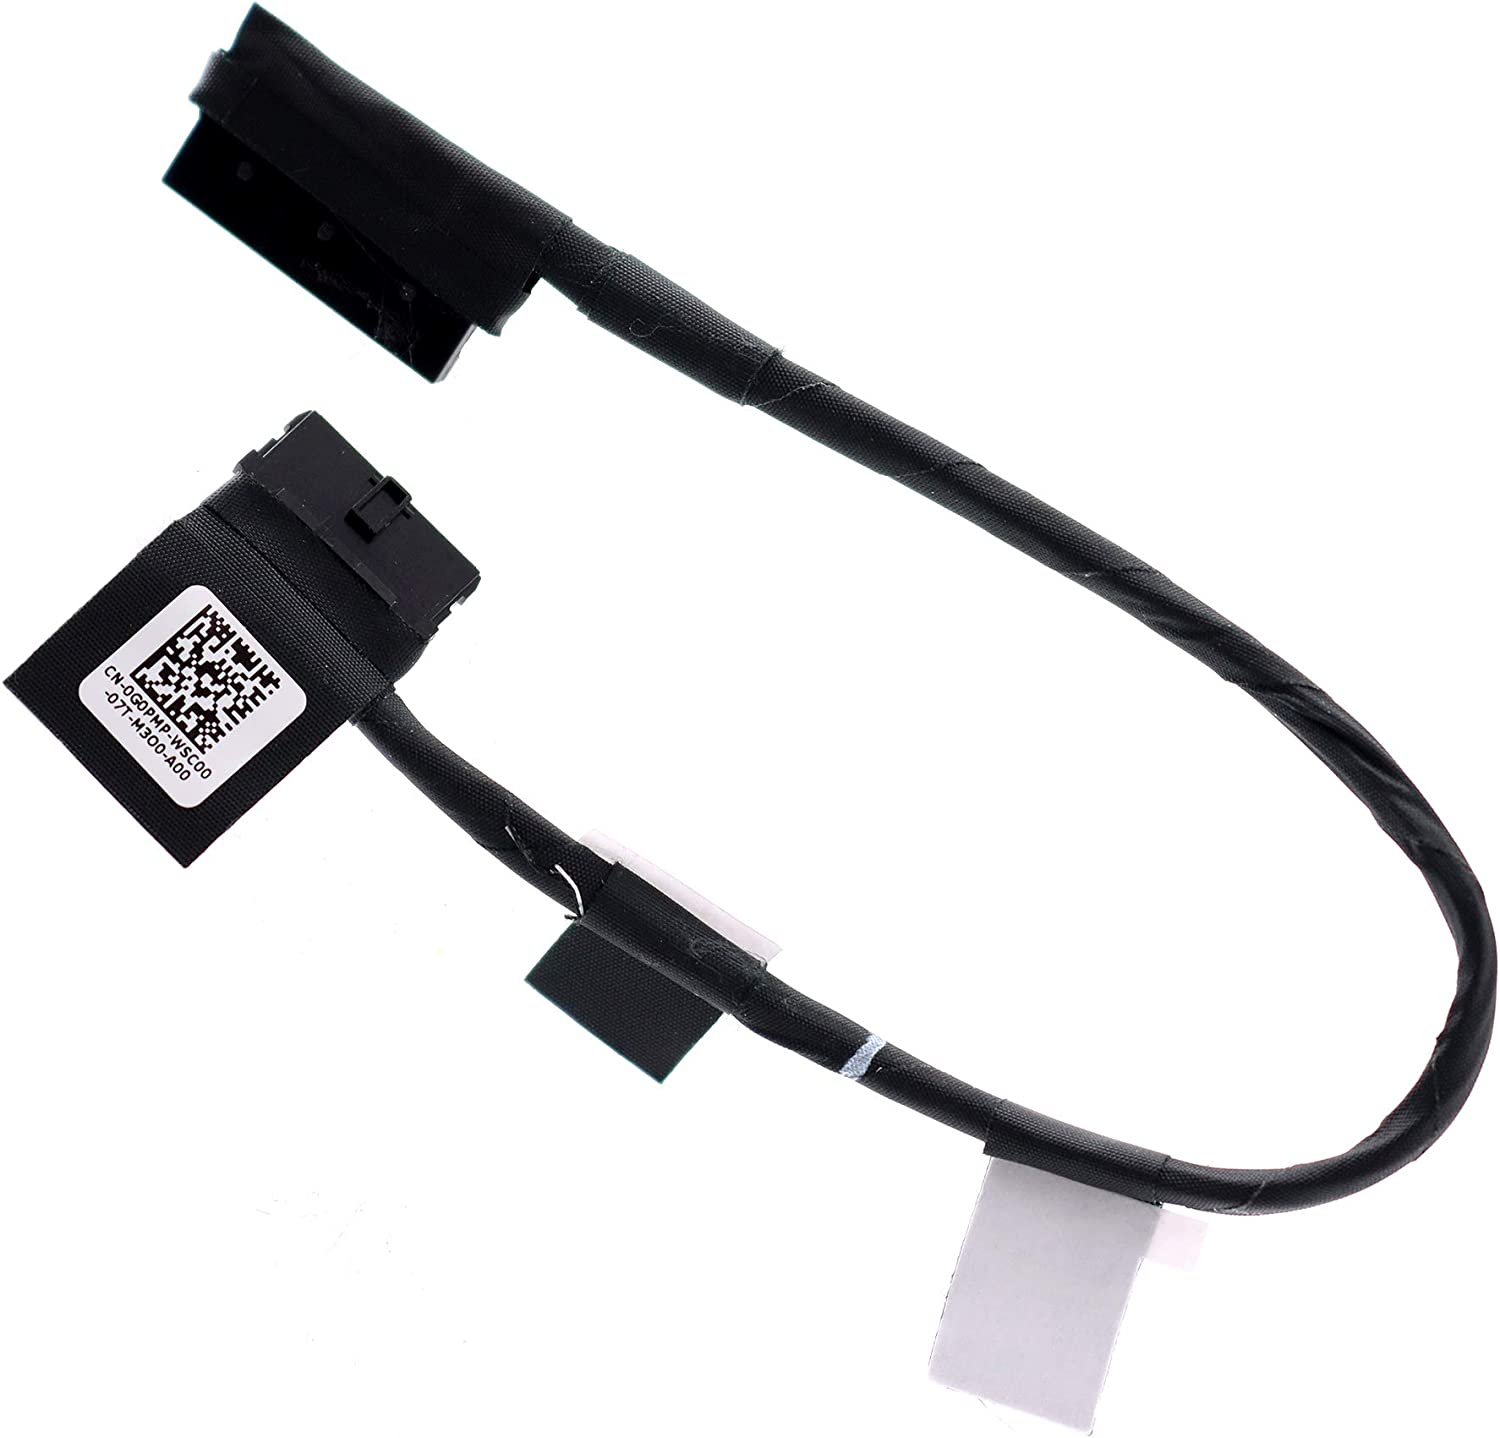 Deal4GO Battery Cable Connector Replacement for Dell Latitude 13 5300 2 in 1 E5300 P97G 450.0G305.0011 0G0PMP G0PMP